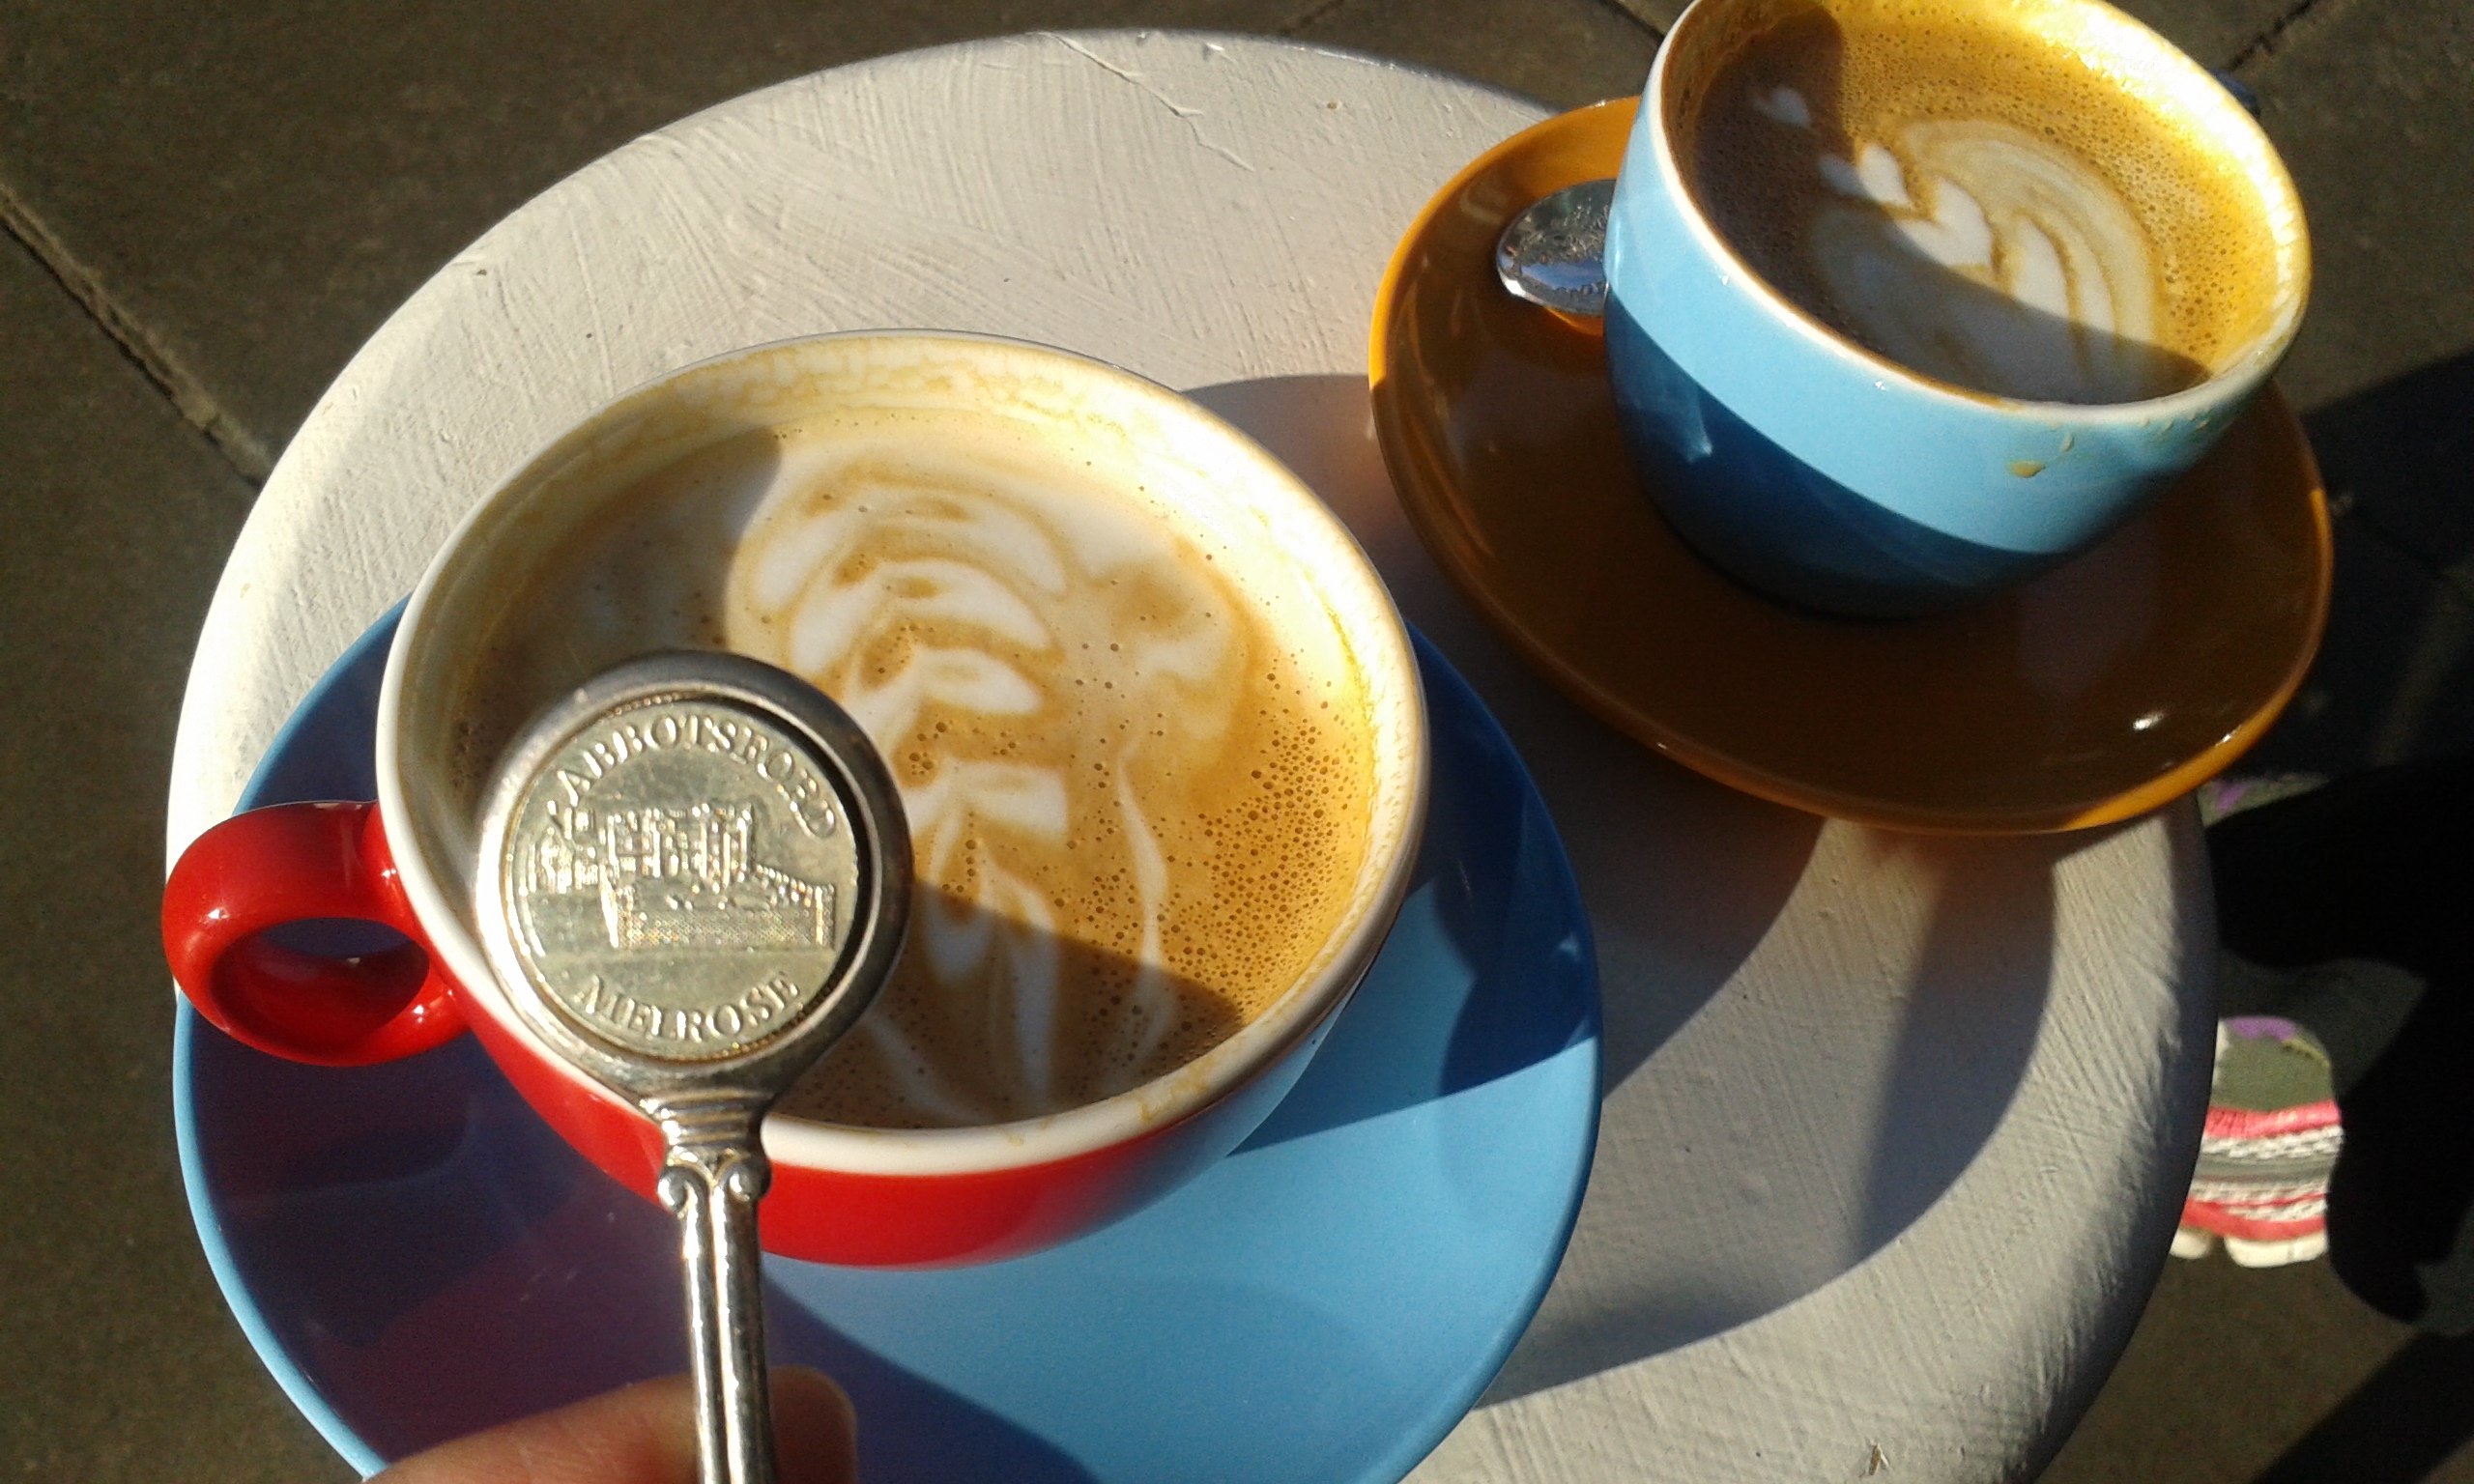 Abbotsford House spoon at Filament coffee